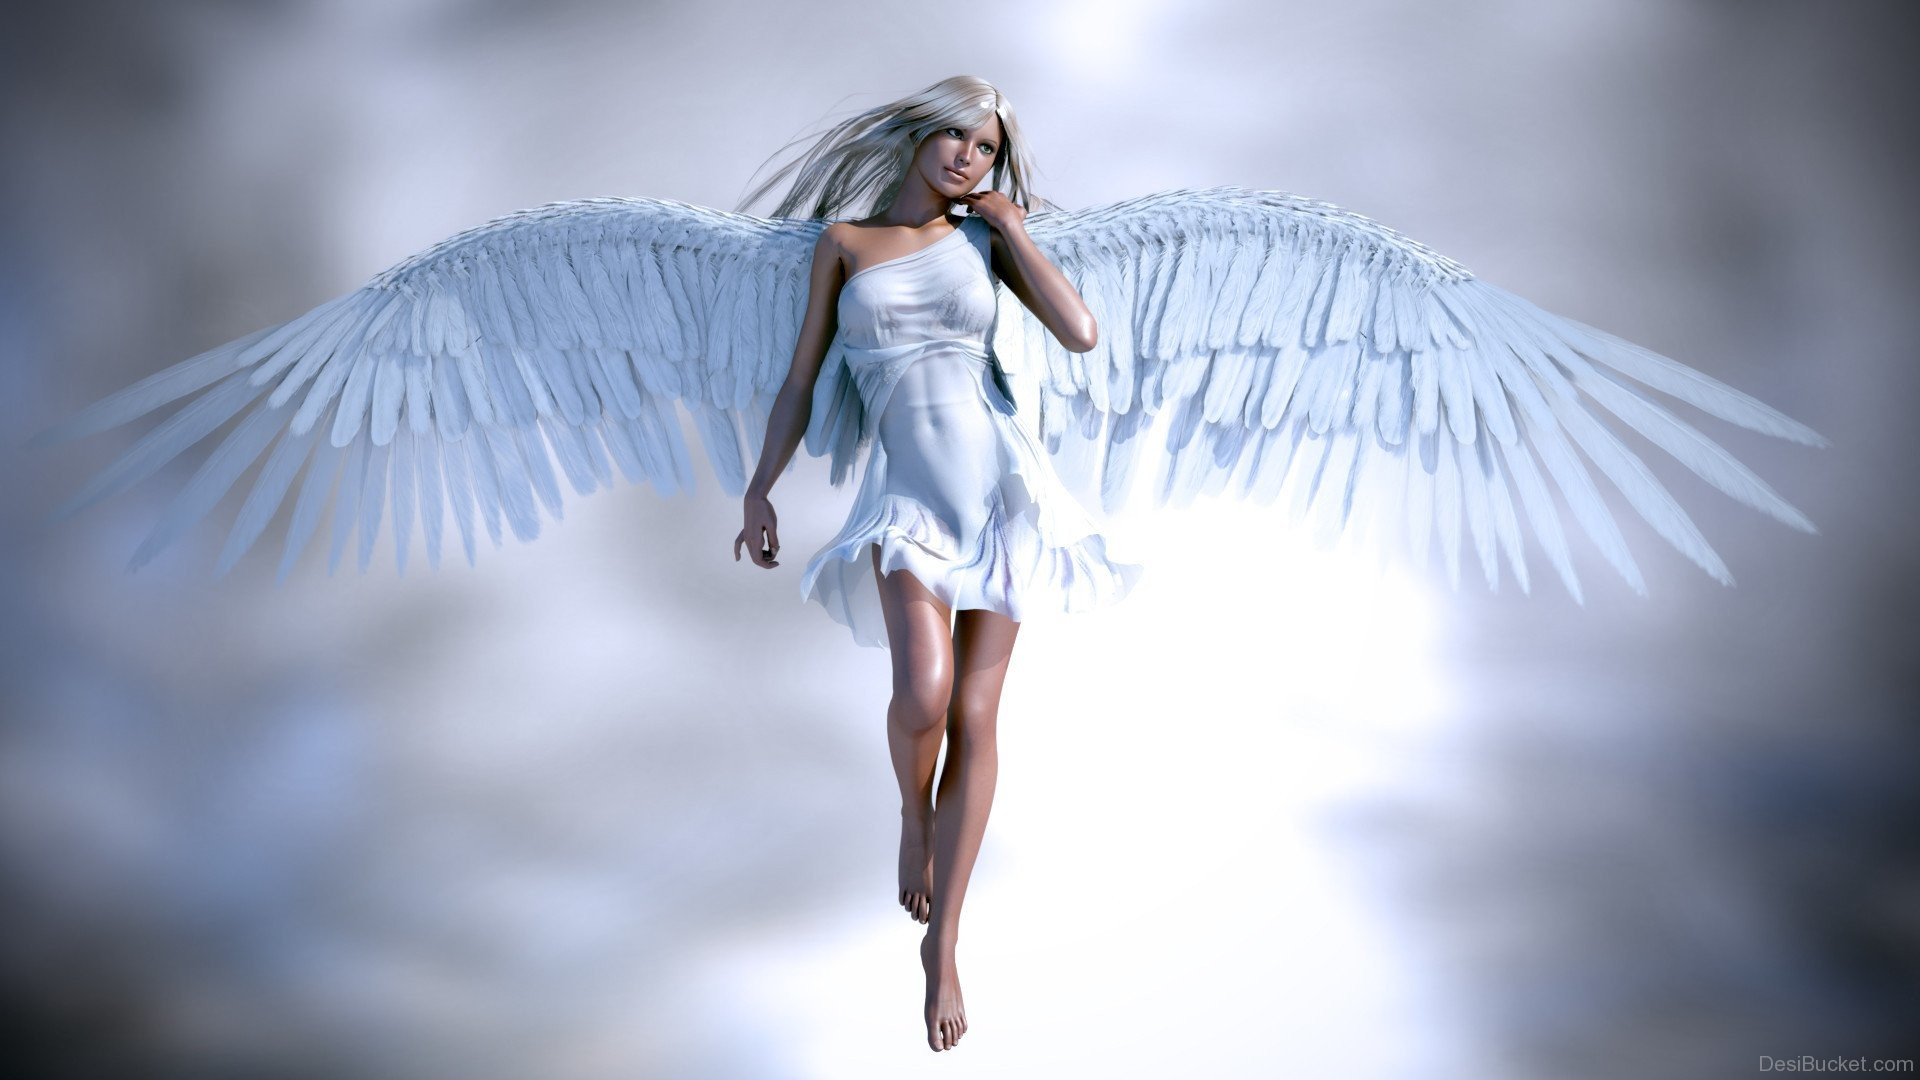 1920x1080 Angel Wallpapers